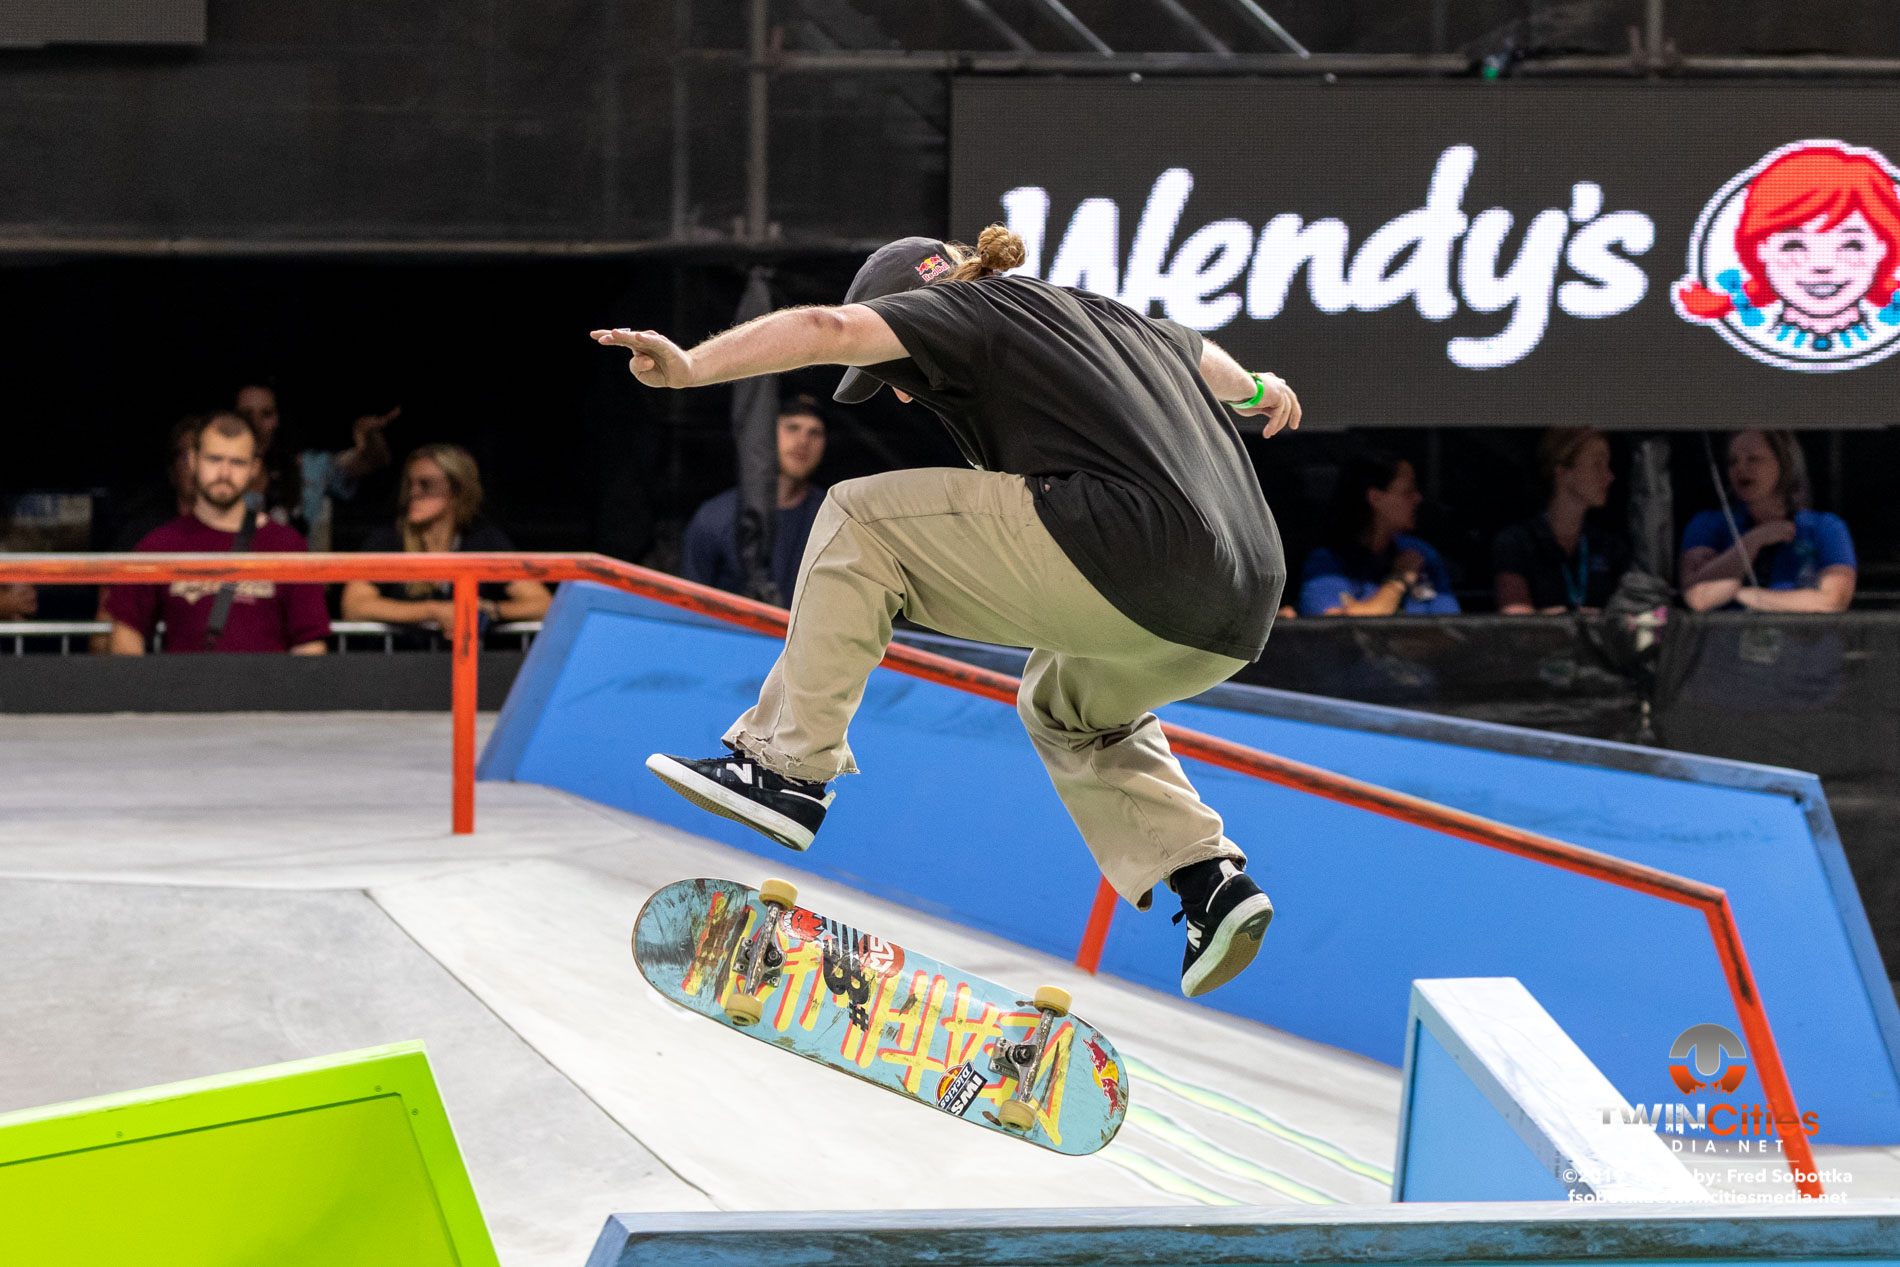 Monster-Energy-Mens-Skateboard-Street-Elimination-07